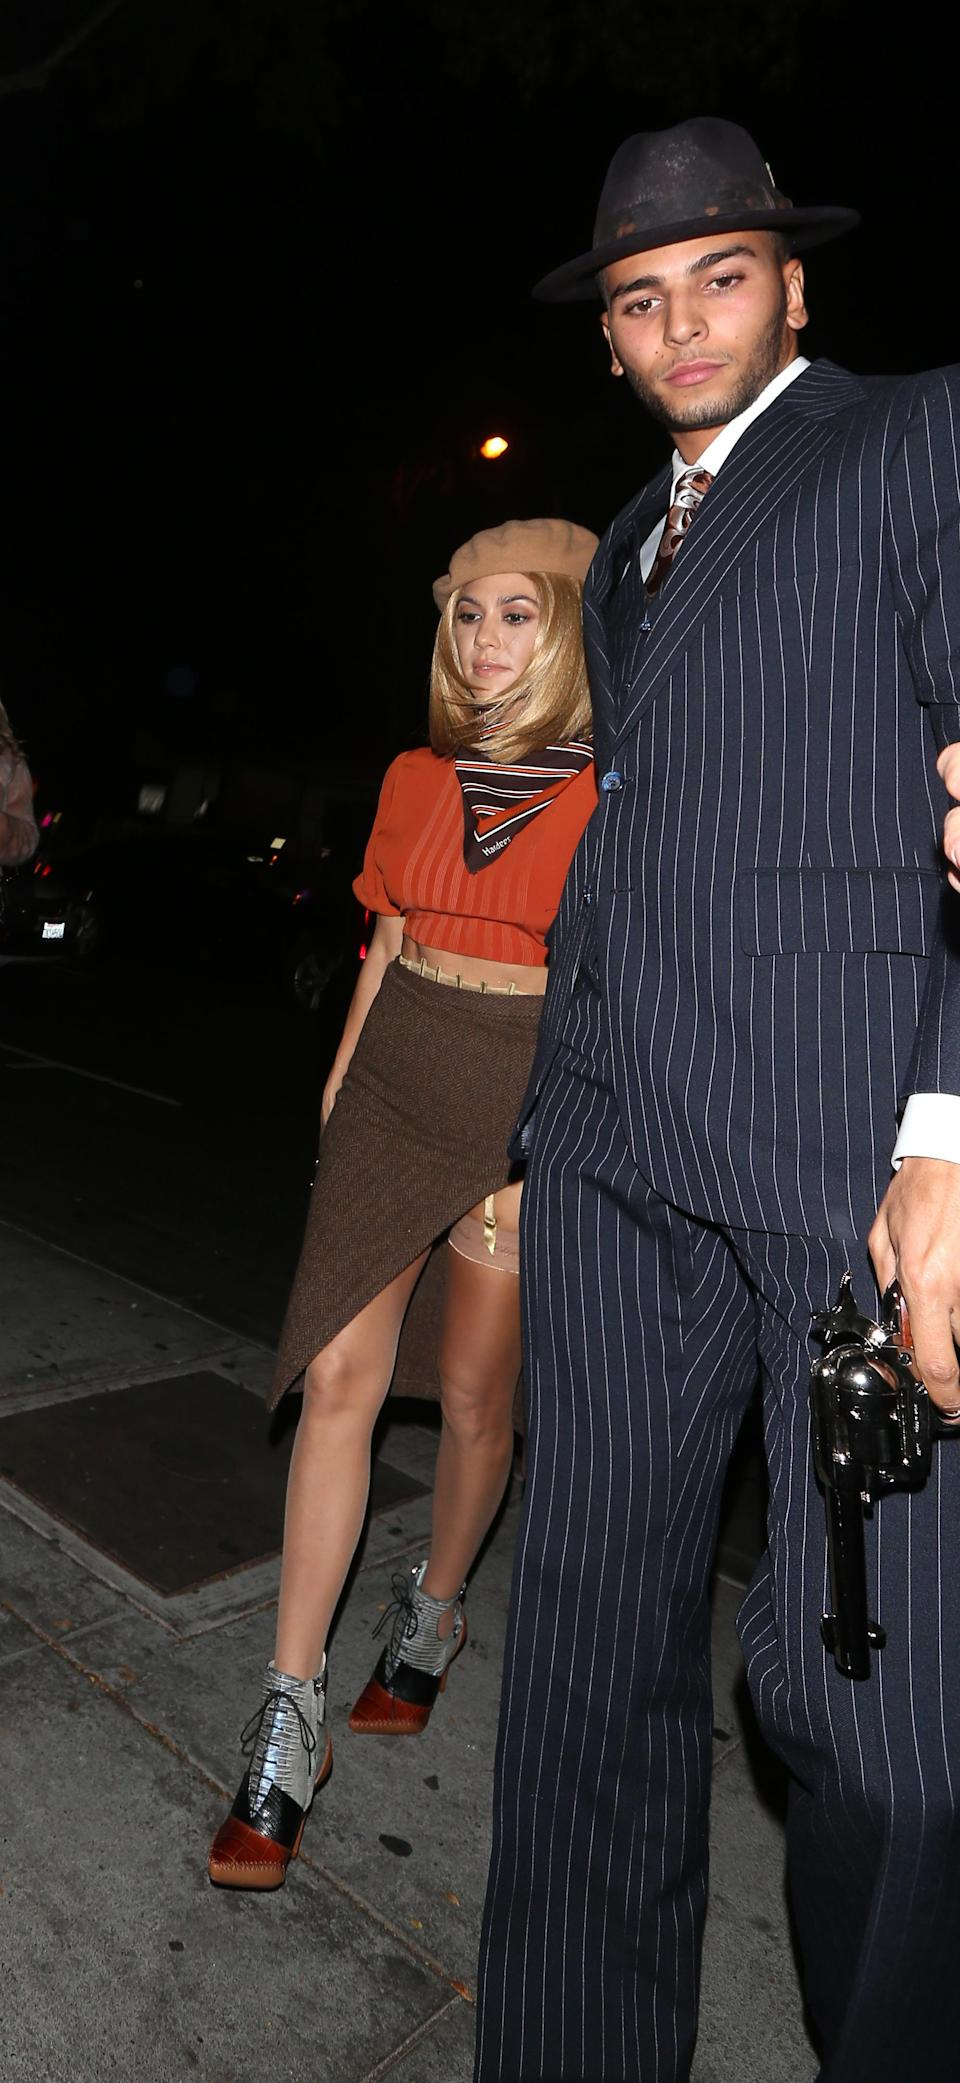 <p>Among the guests at Kendall's Halloween birthday bash was her big sis, who did a couple costume — Bonnie and Clyde — with boyfriend Younes Bendjima. (Photo: Splash News) </p>